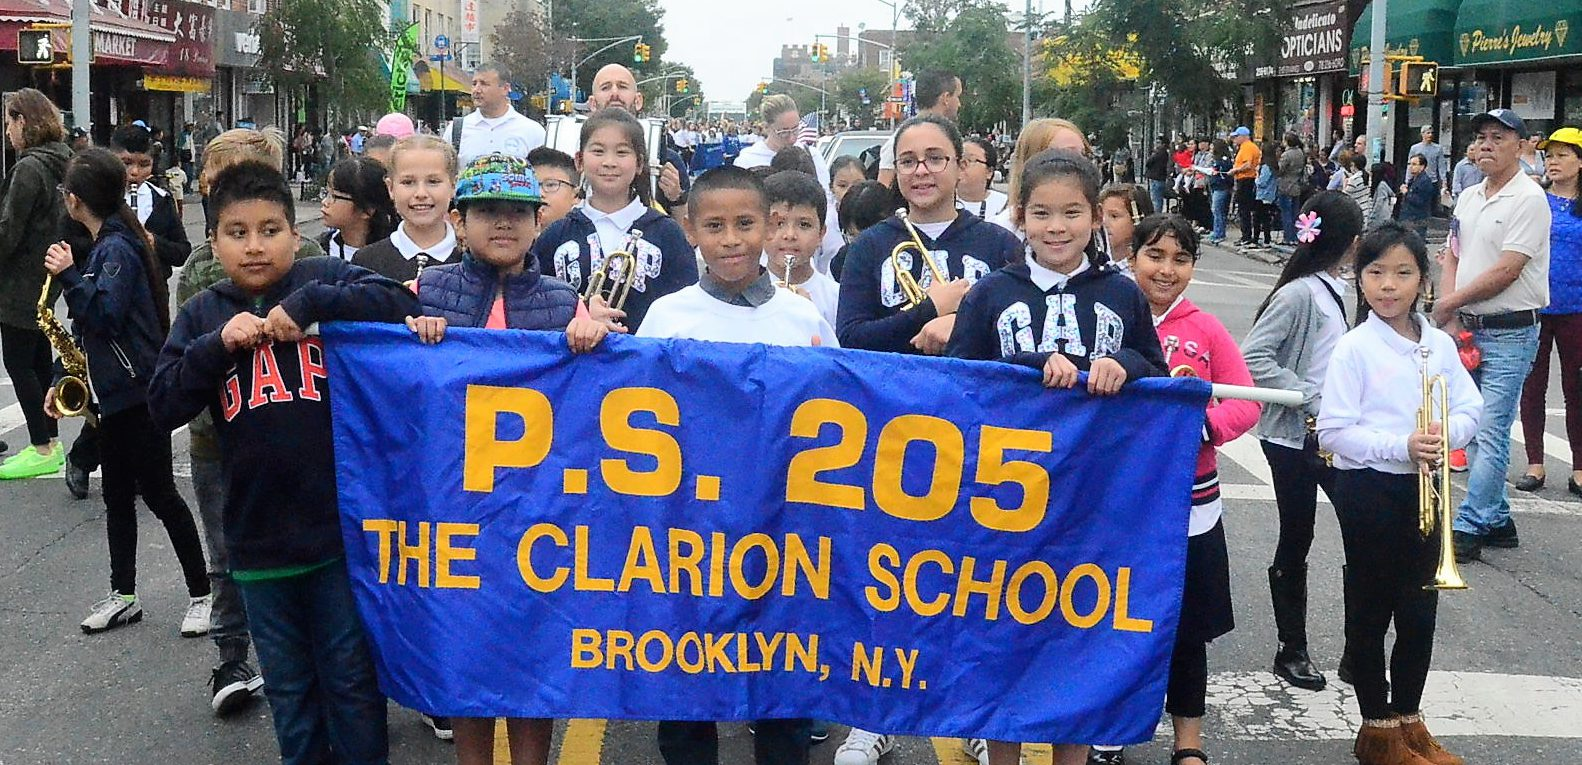 ps 205 banner